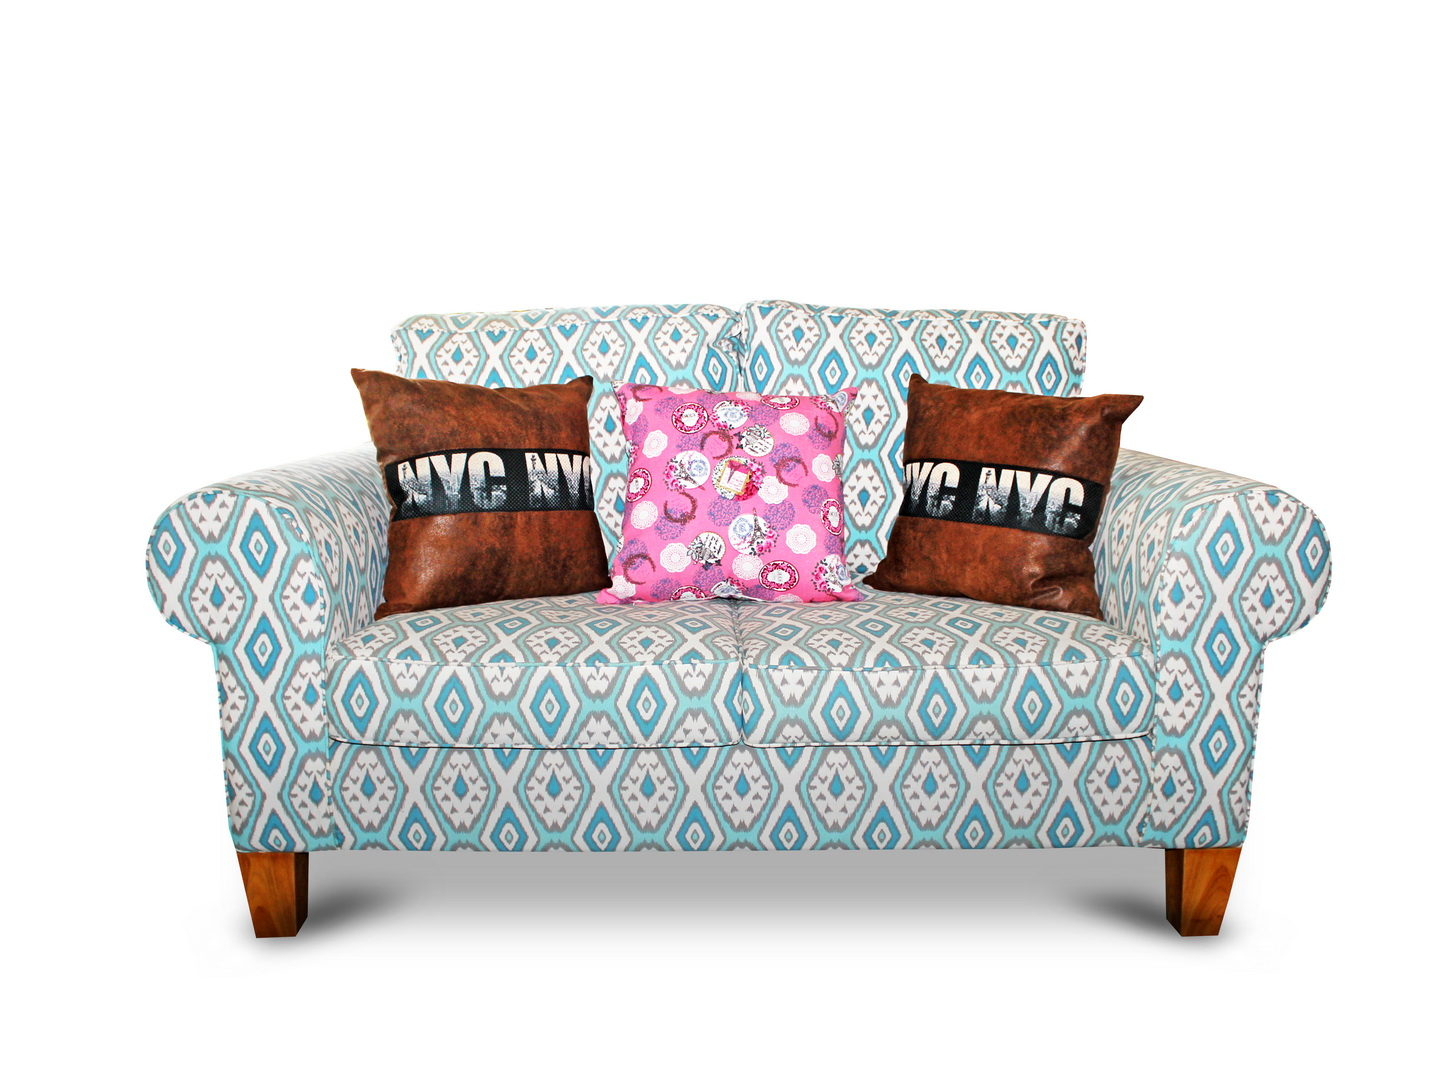 sofa exporters india cheap sectional sofas under 1000 upholstered manufacturers gradschoolfairs